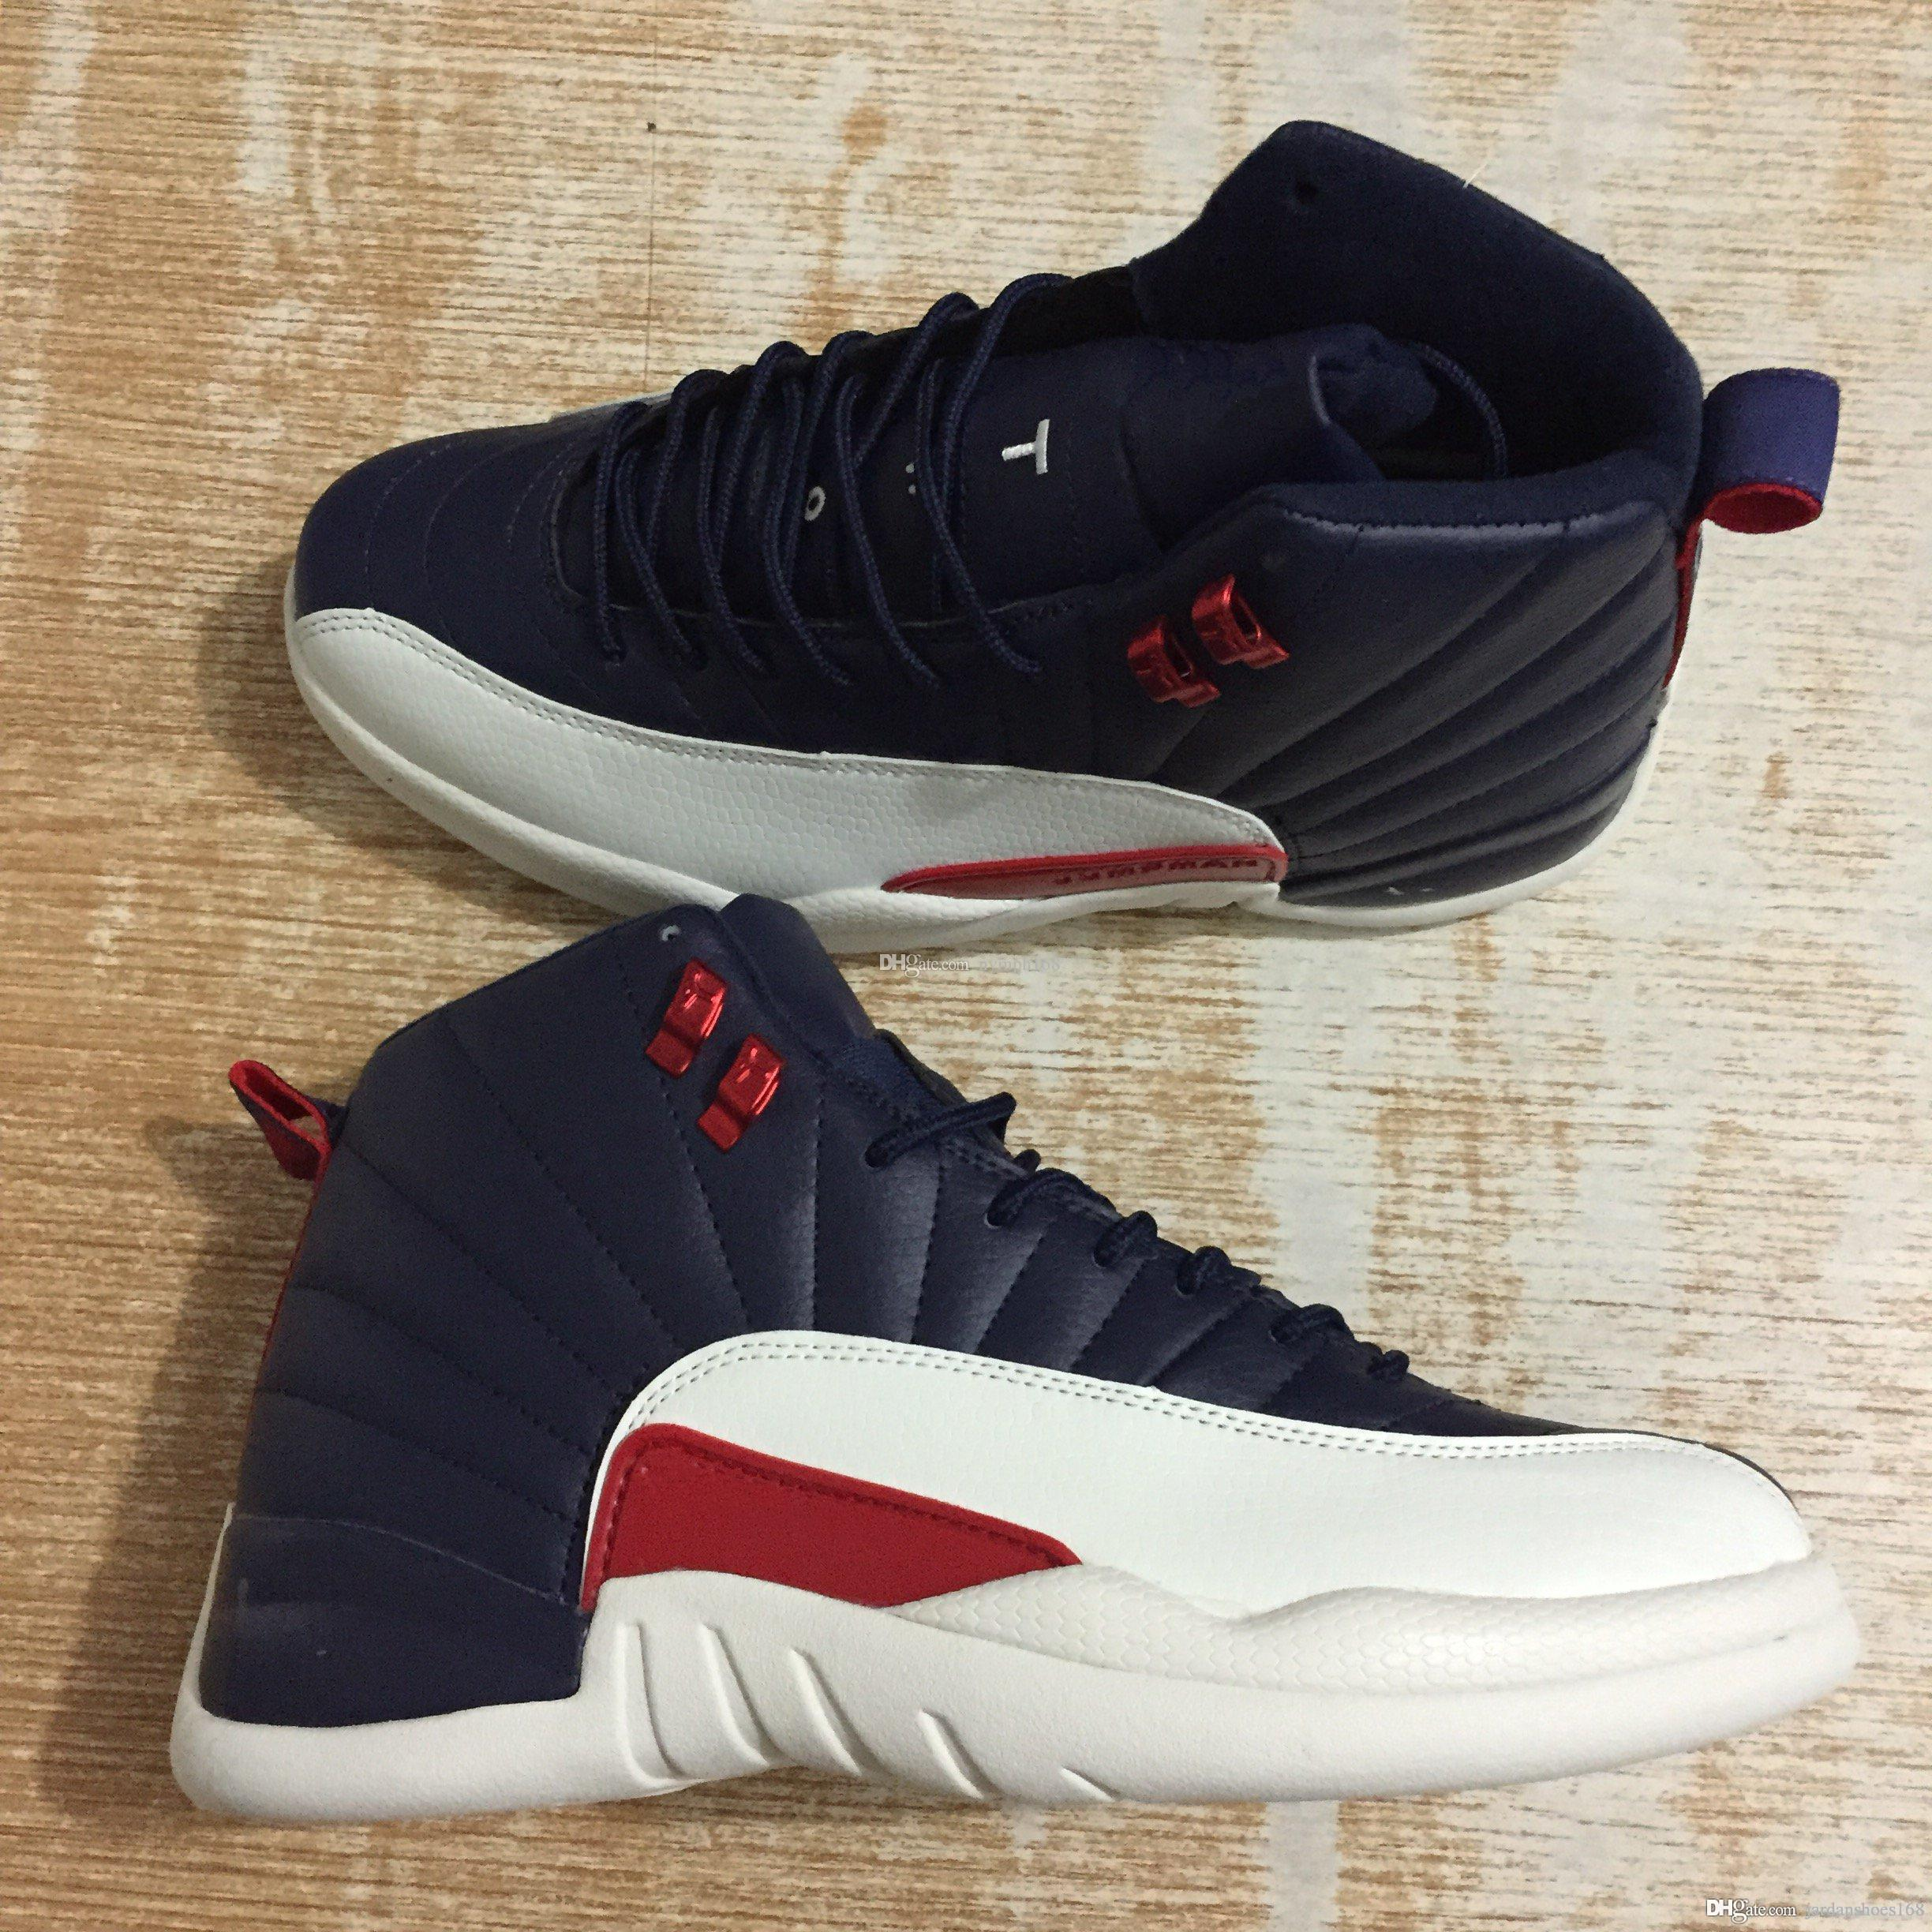 premium selection bddd1 5a1f3 New Retro High Quality 12 12s Michigan Vachetta Tan Deep blue red white  men's sport shoes athletic Sneakers size With Box